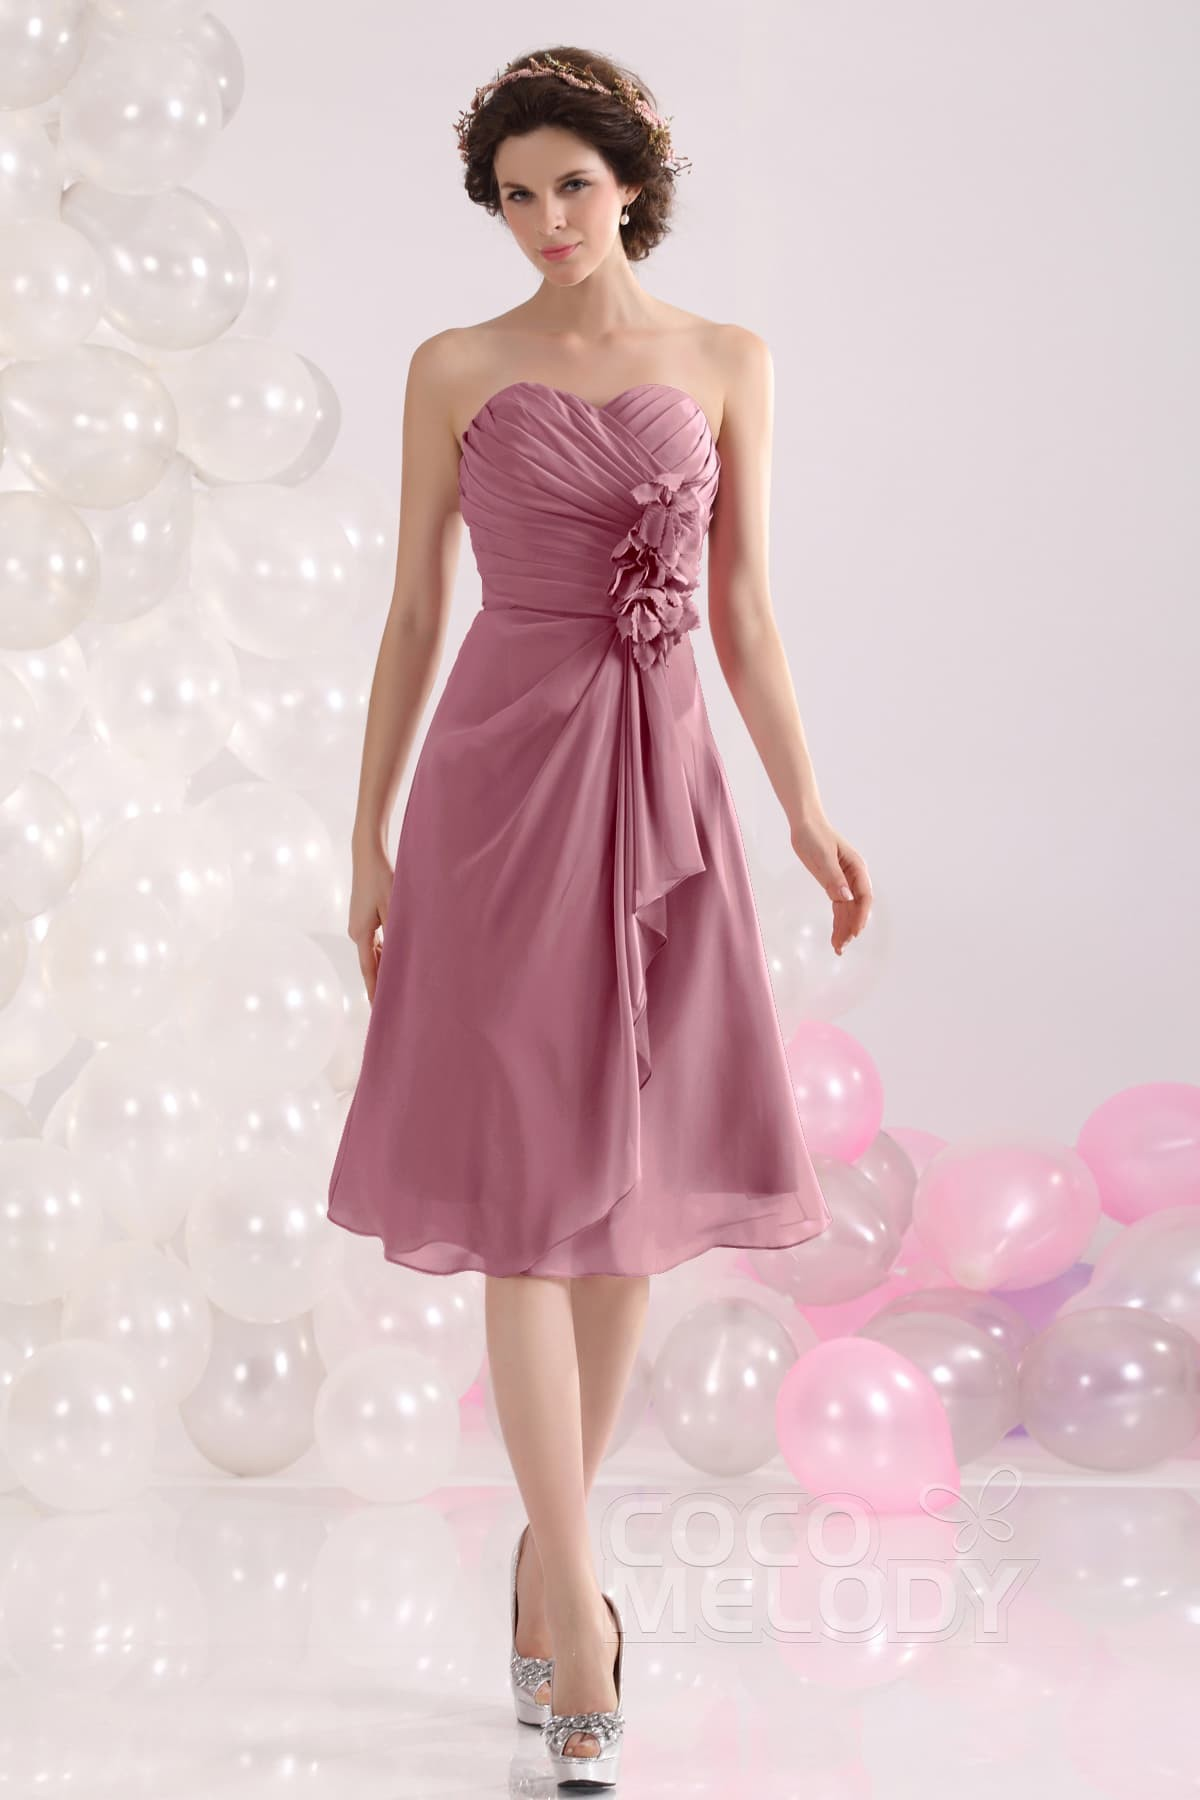 Cocomelody: A-Line Sweetheart Knee Length Chiffon Bridesmaid Dress ...